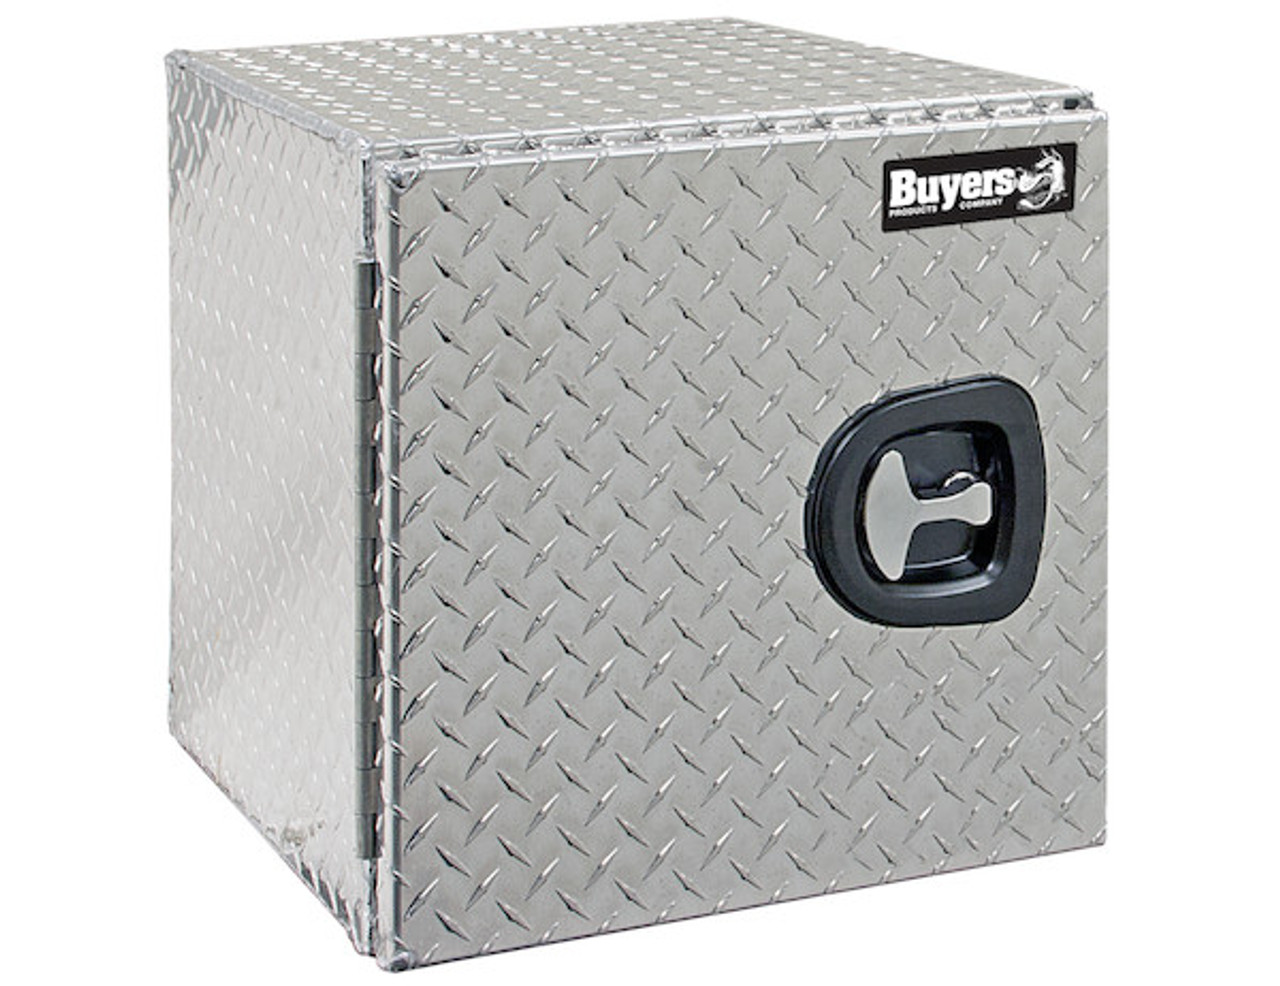 "1705203 BUYERS PRODUCTS DIAMOND TREAD ALUMINUM UNDERBODY TRUCK TOOLBOX WITH BARN DOOR 18""HX18""DX30""W"